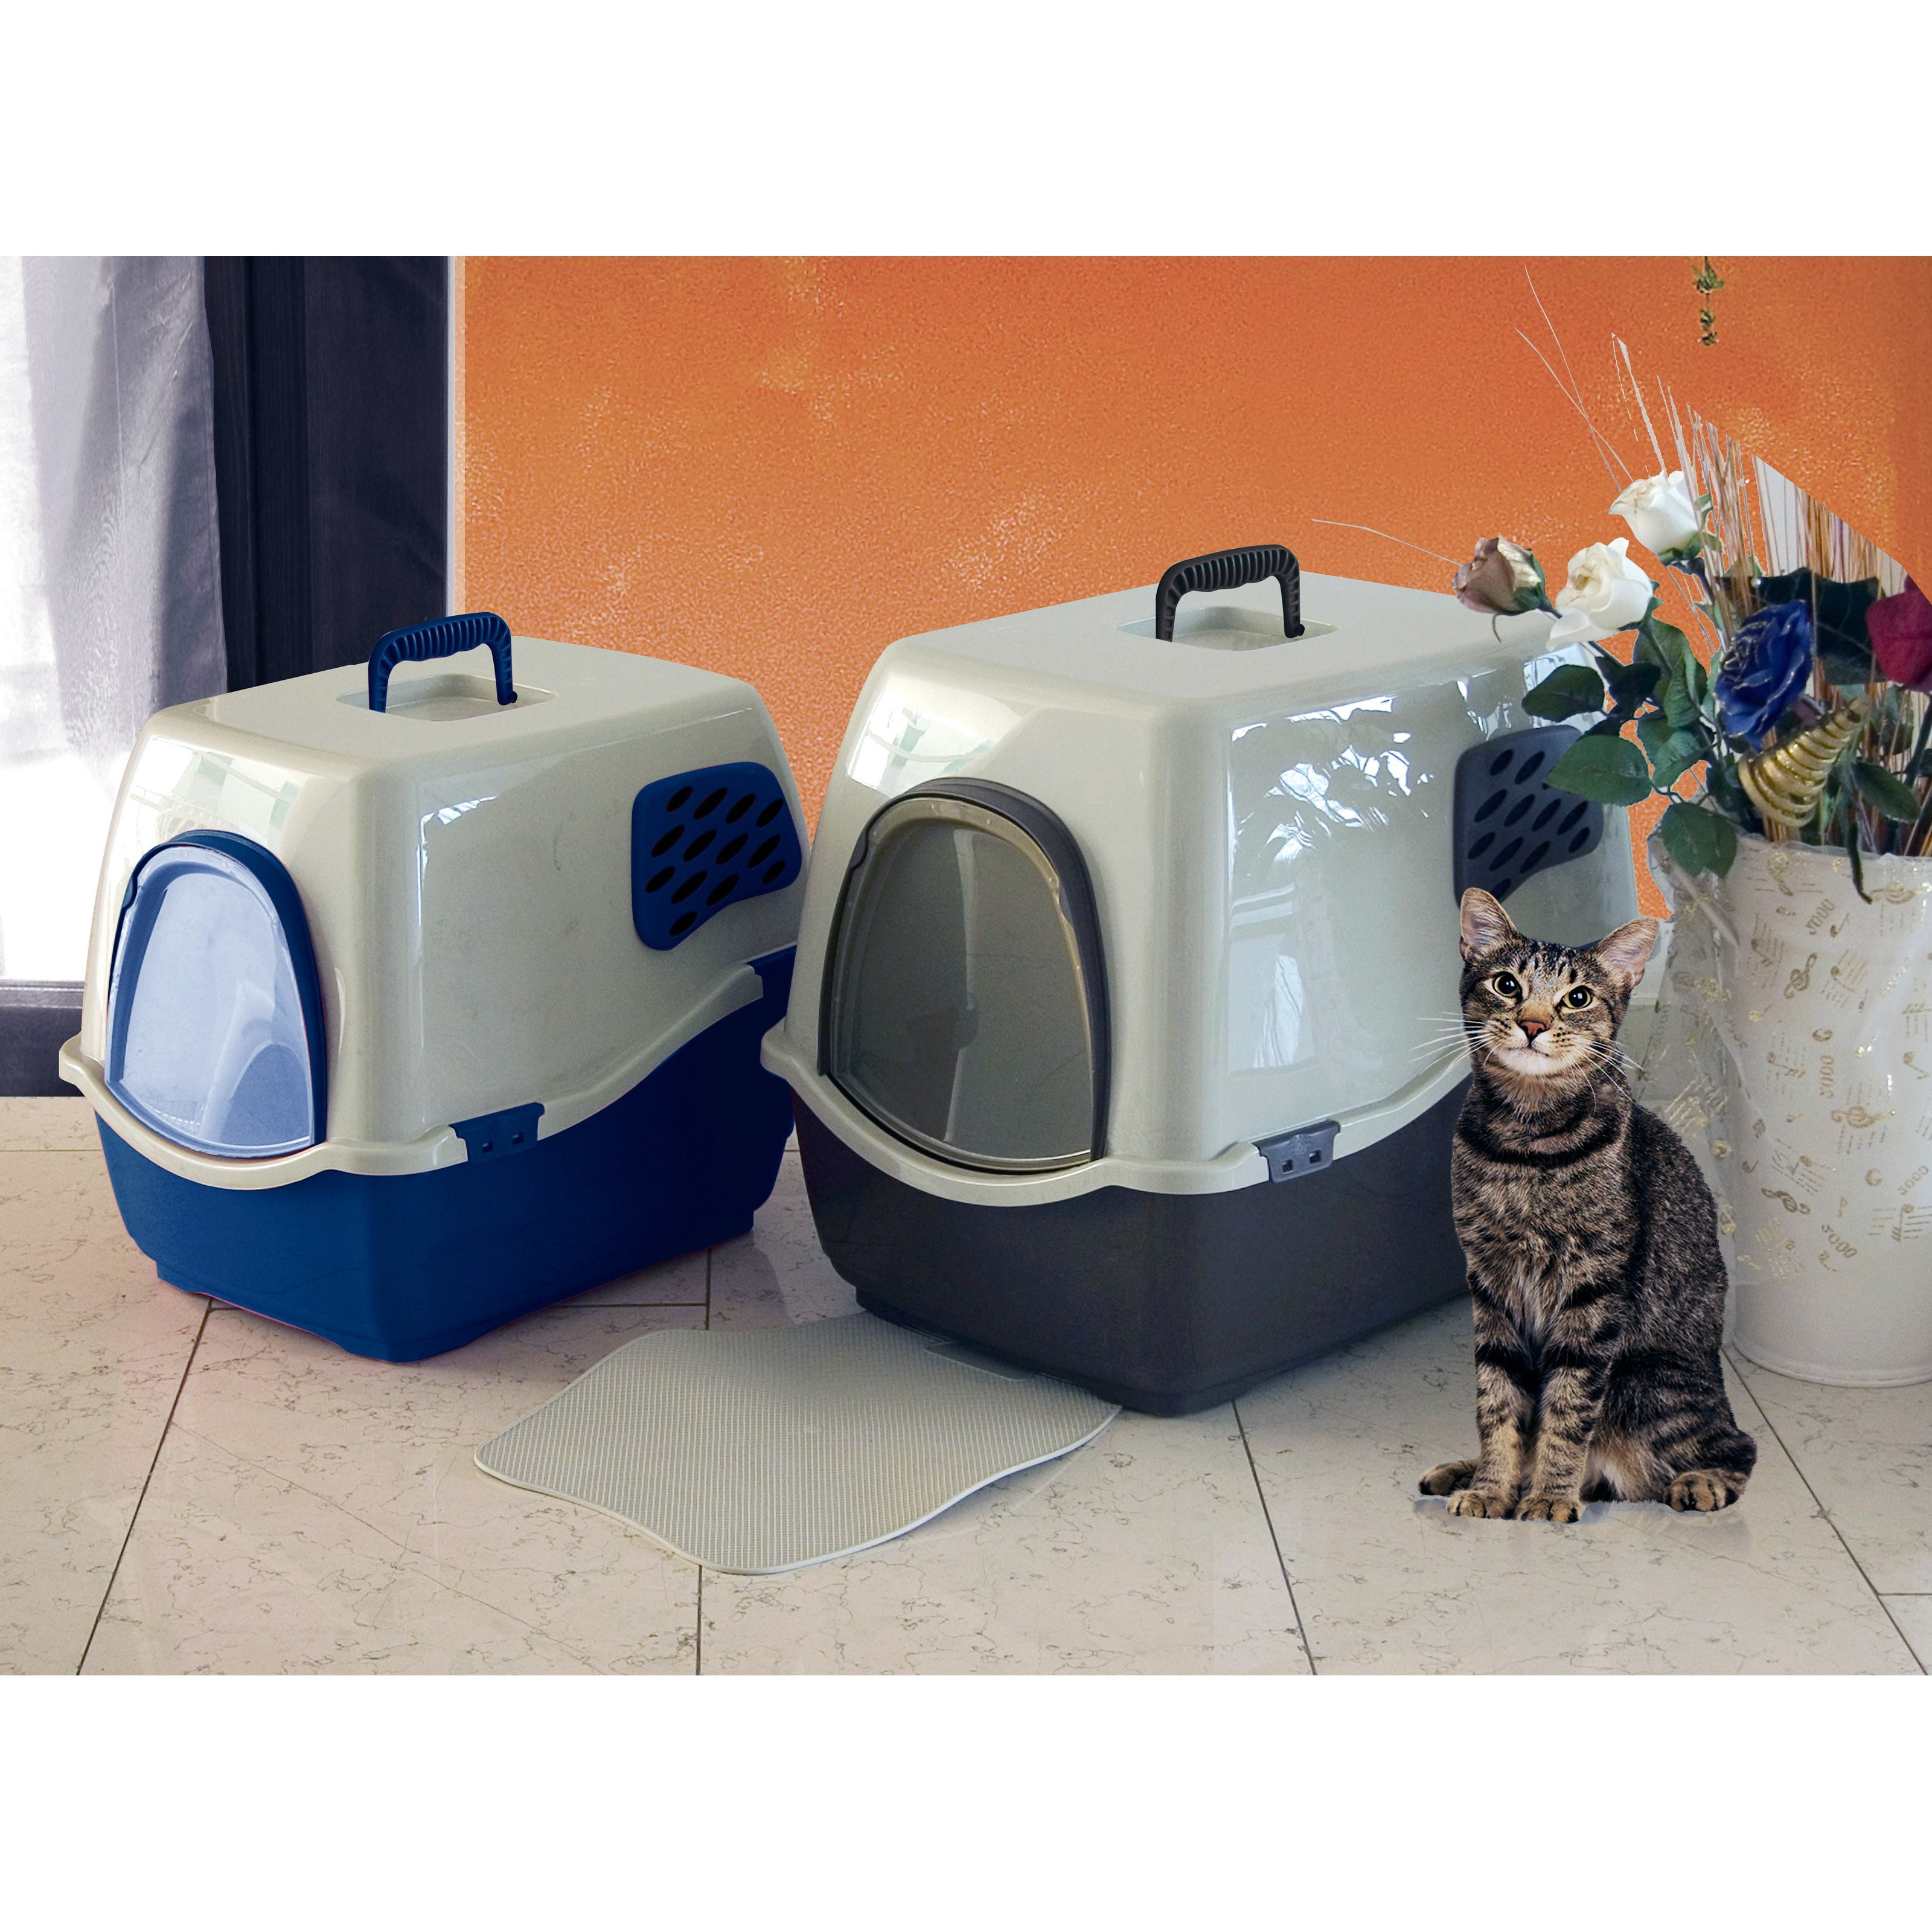 Marchioro Bill 2F Covered Cat Litter Box